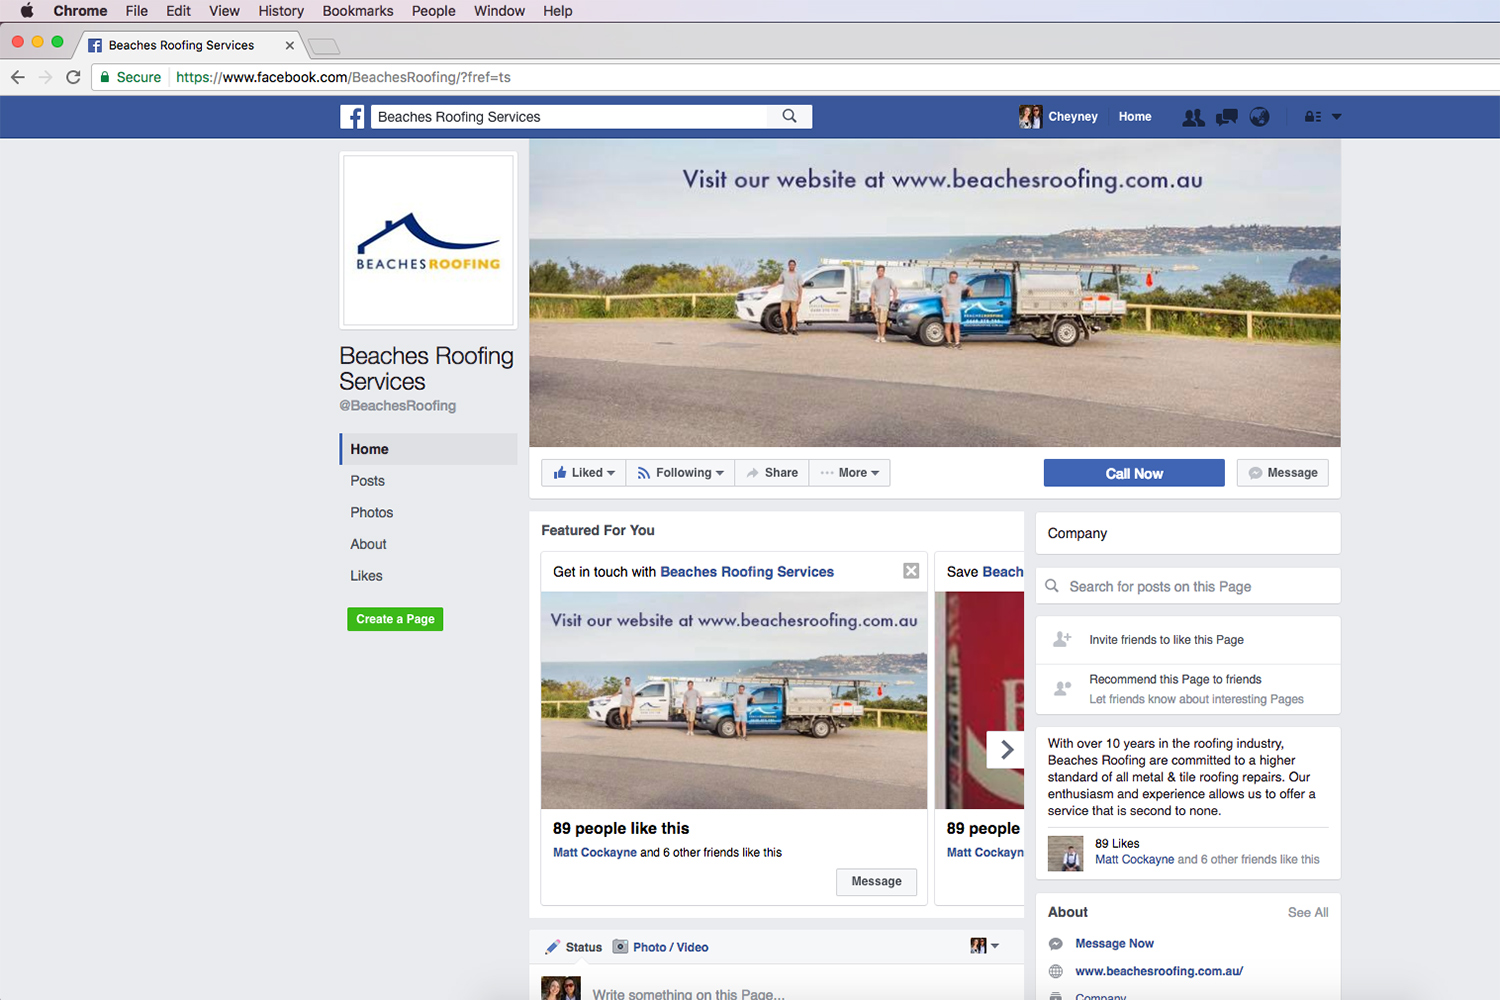 Facebook Page Design for Beaches Roofing